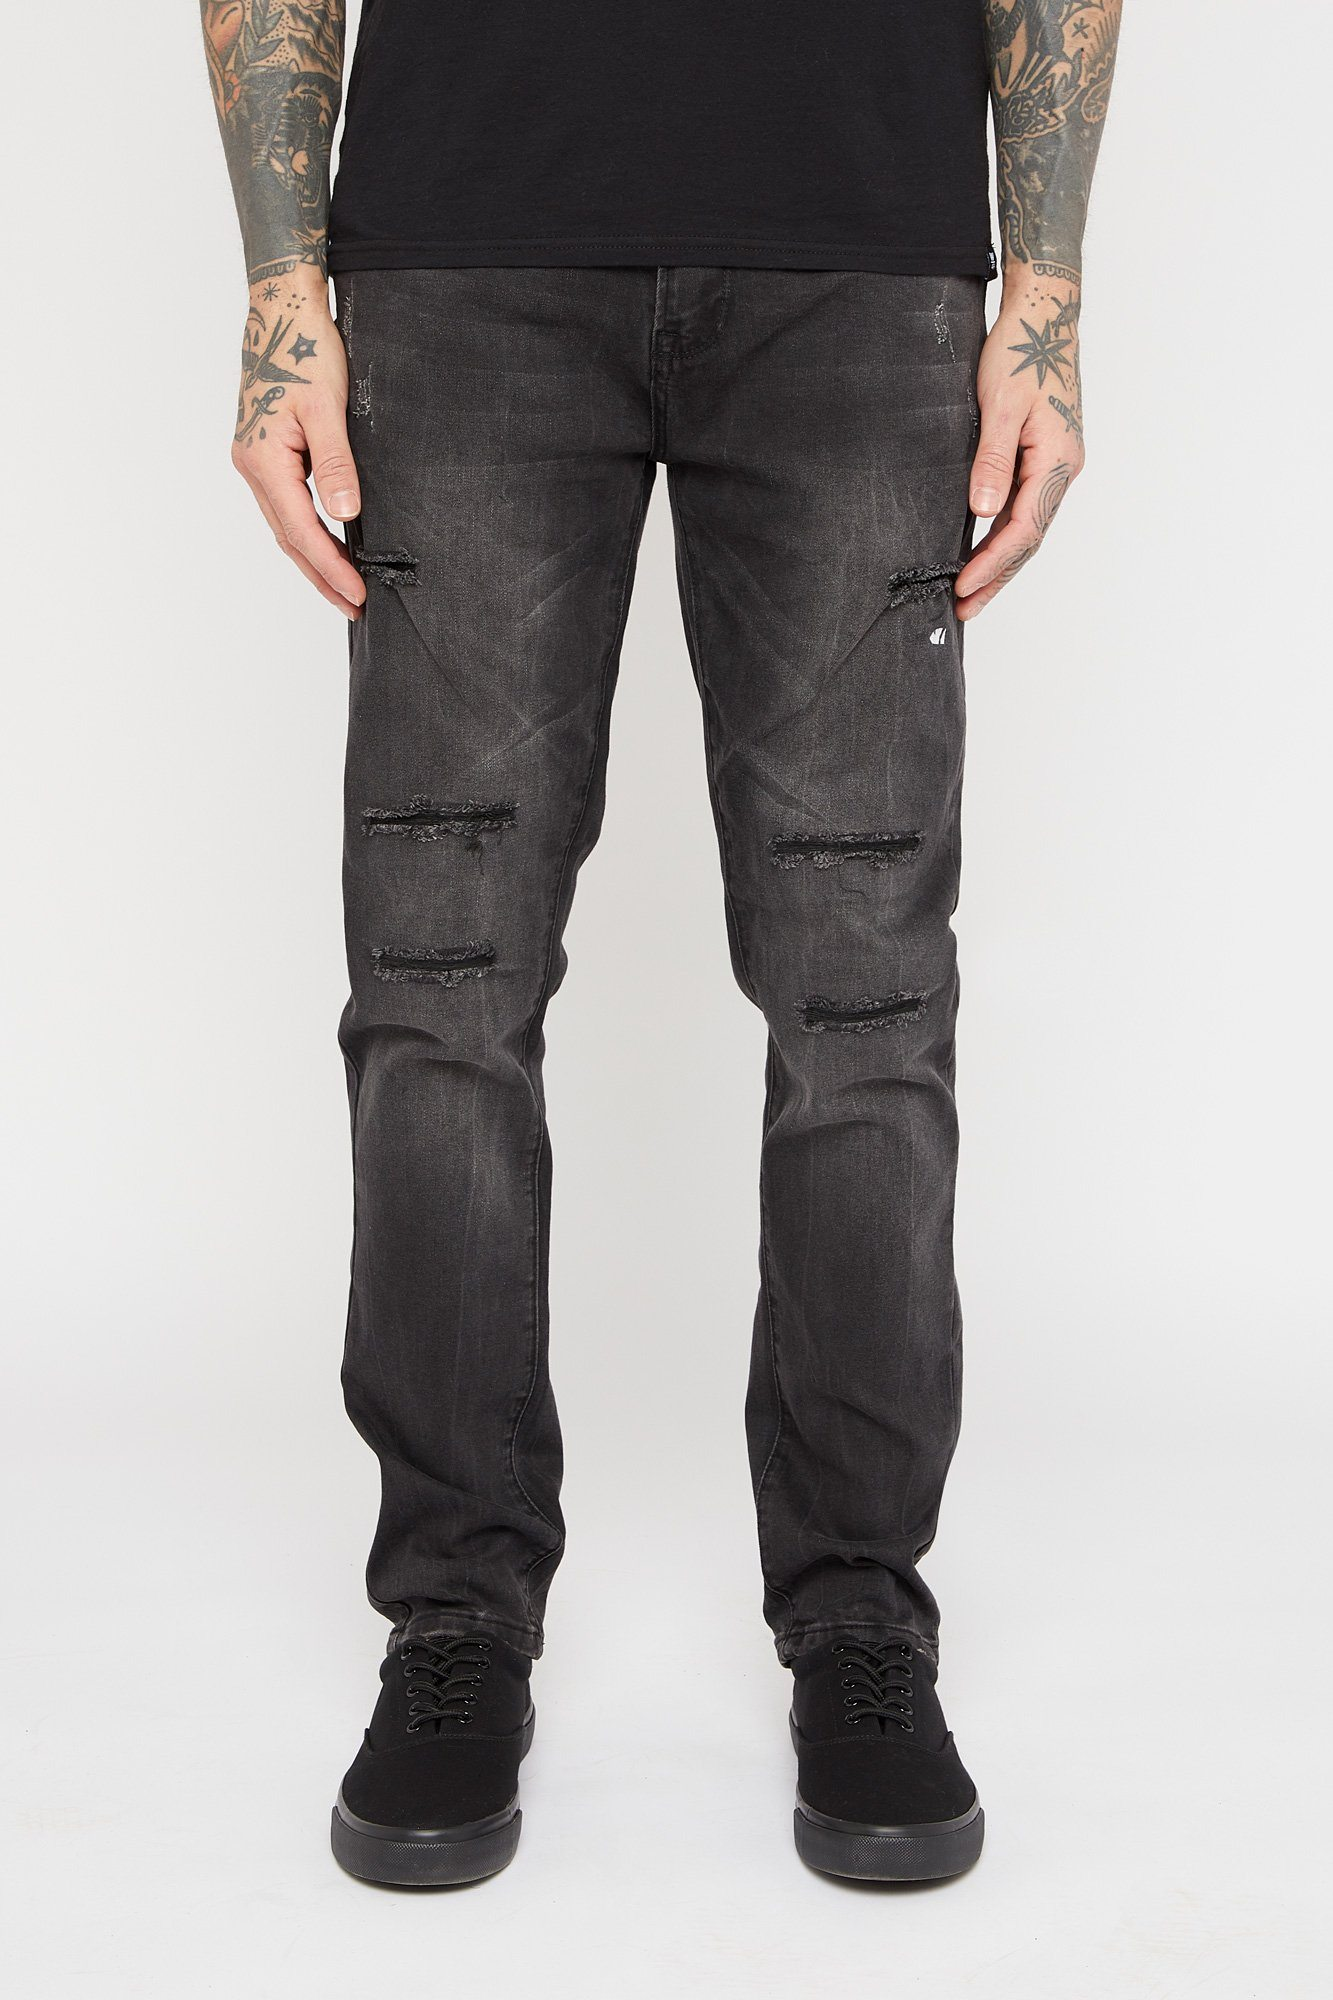 Image of Zoo York Mens Distressed Skinny Jeans